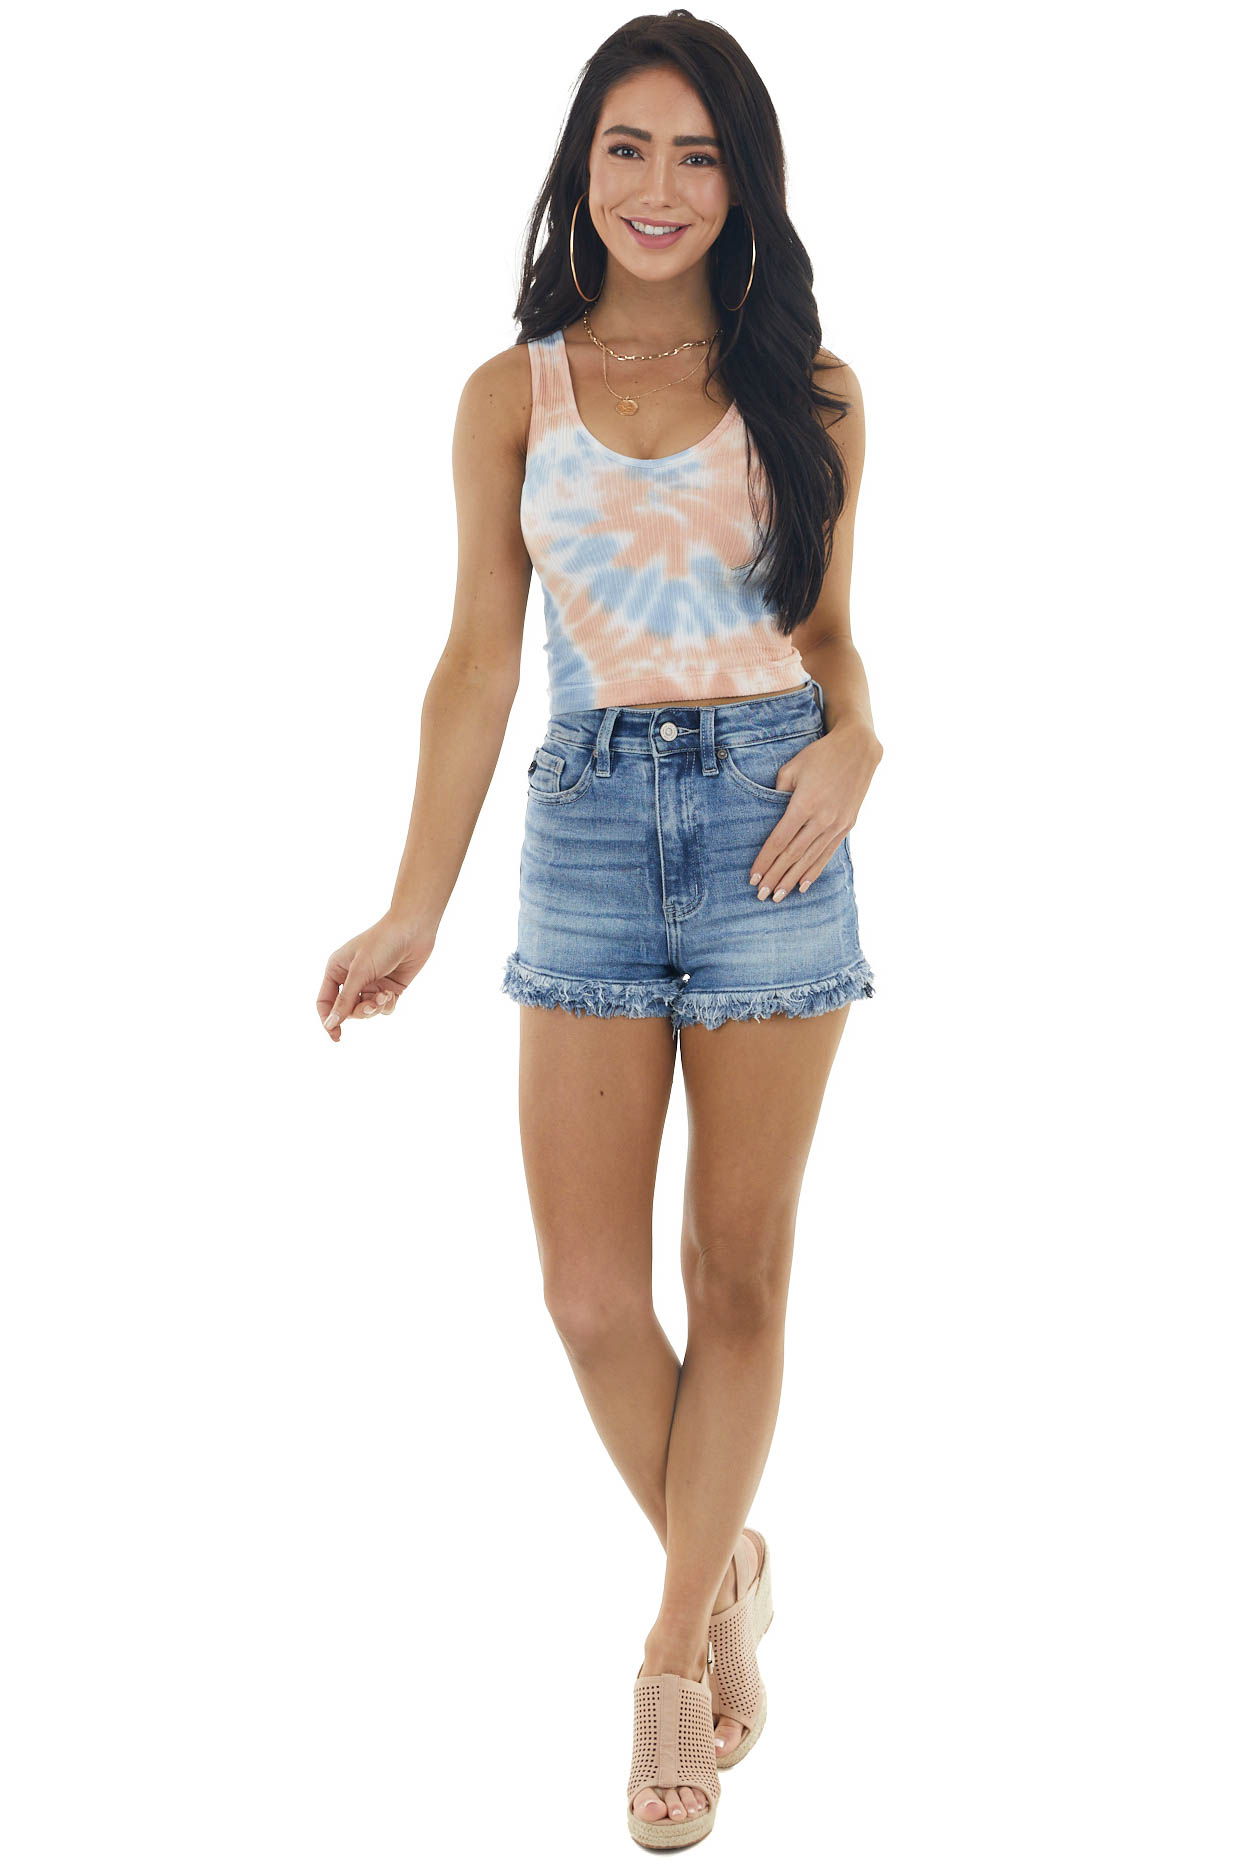 Powder Blue and Melon Tie Dye Ribbed Sleeveless Crop Top